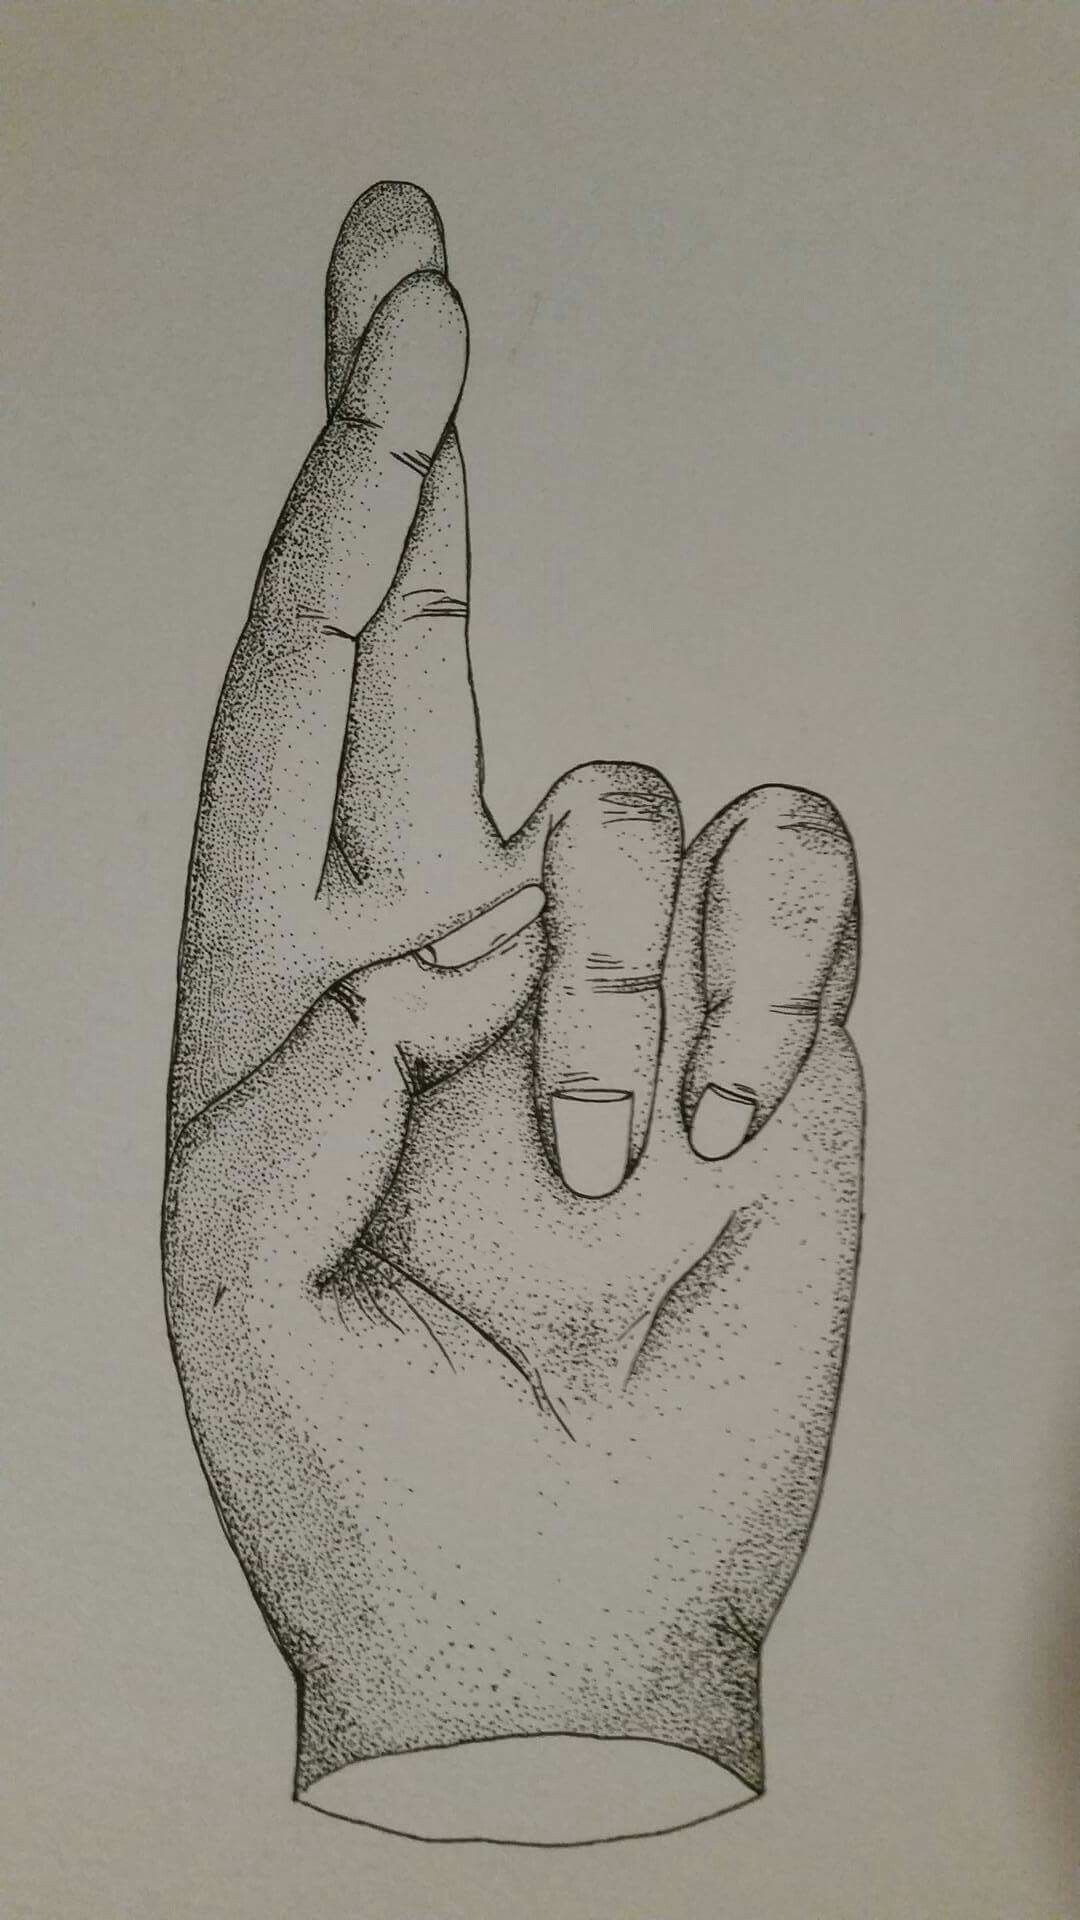 Dot drawing hand | drawing | Pinterest | Dotted drawings